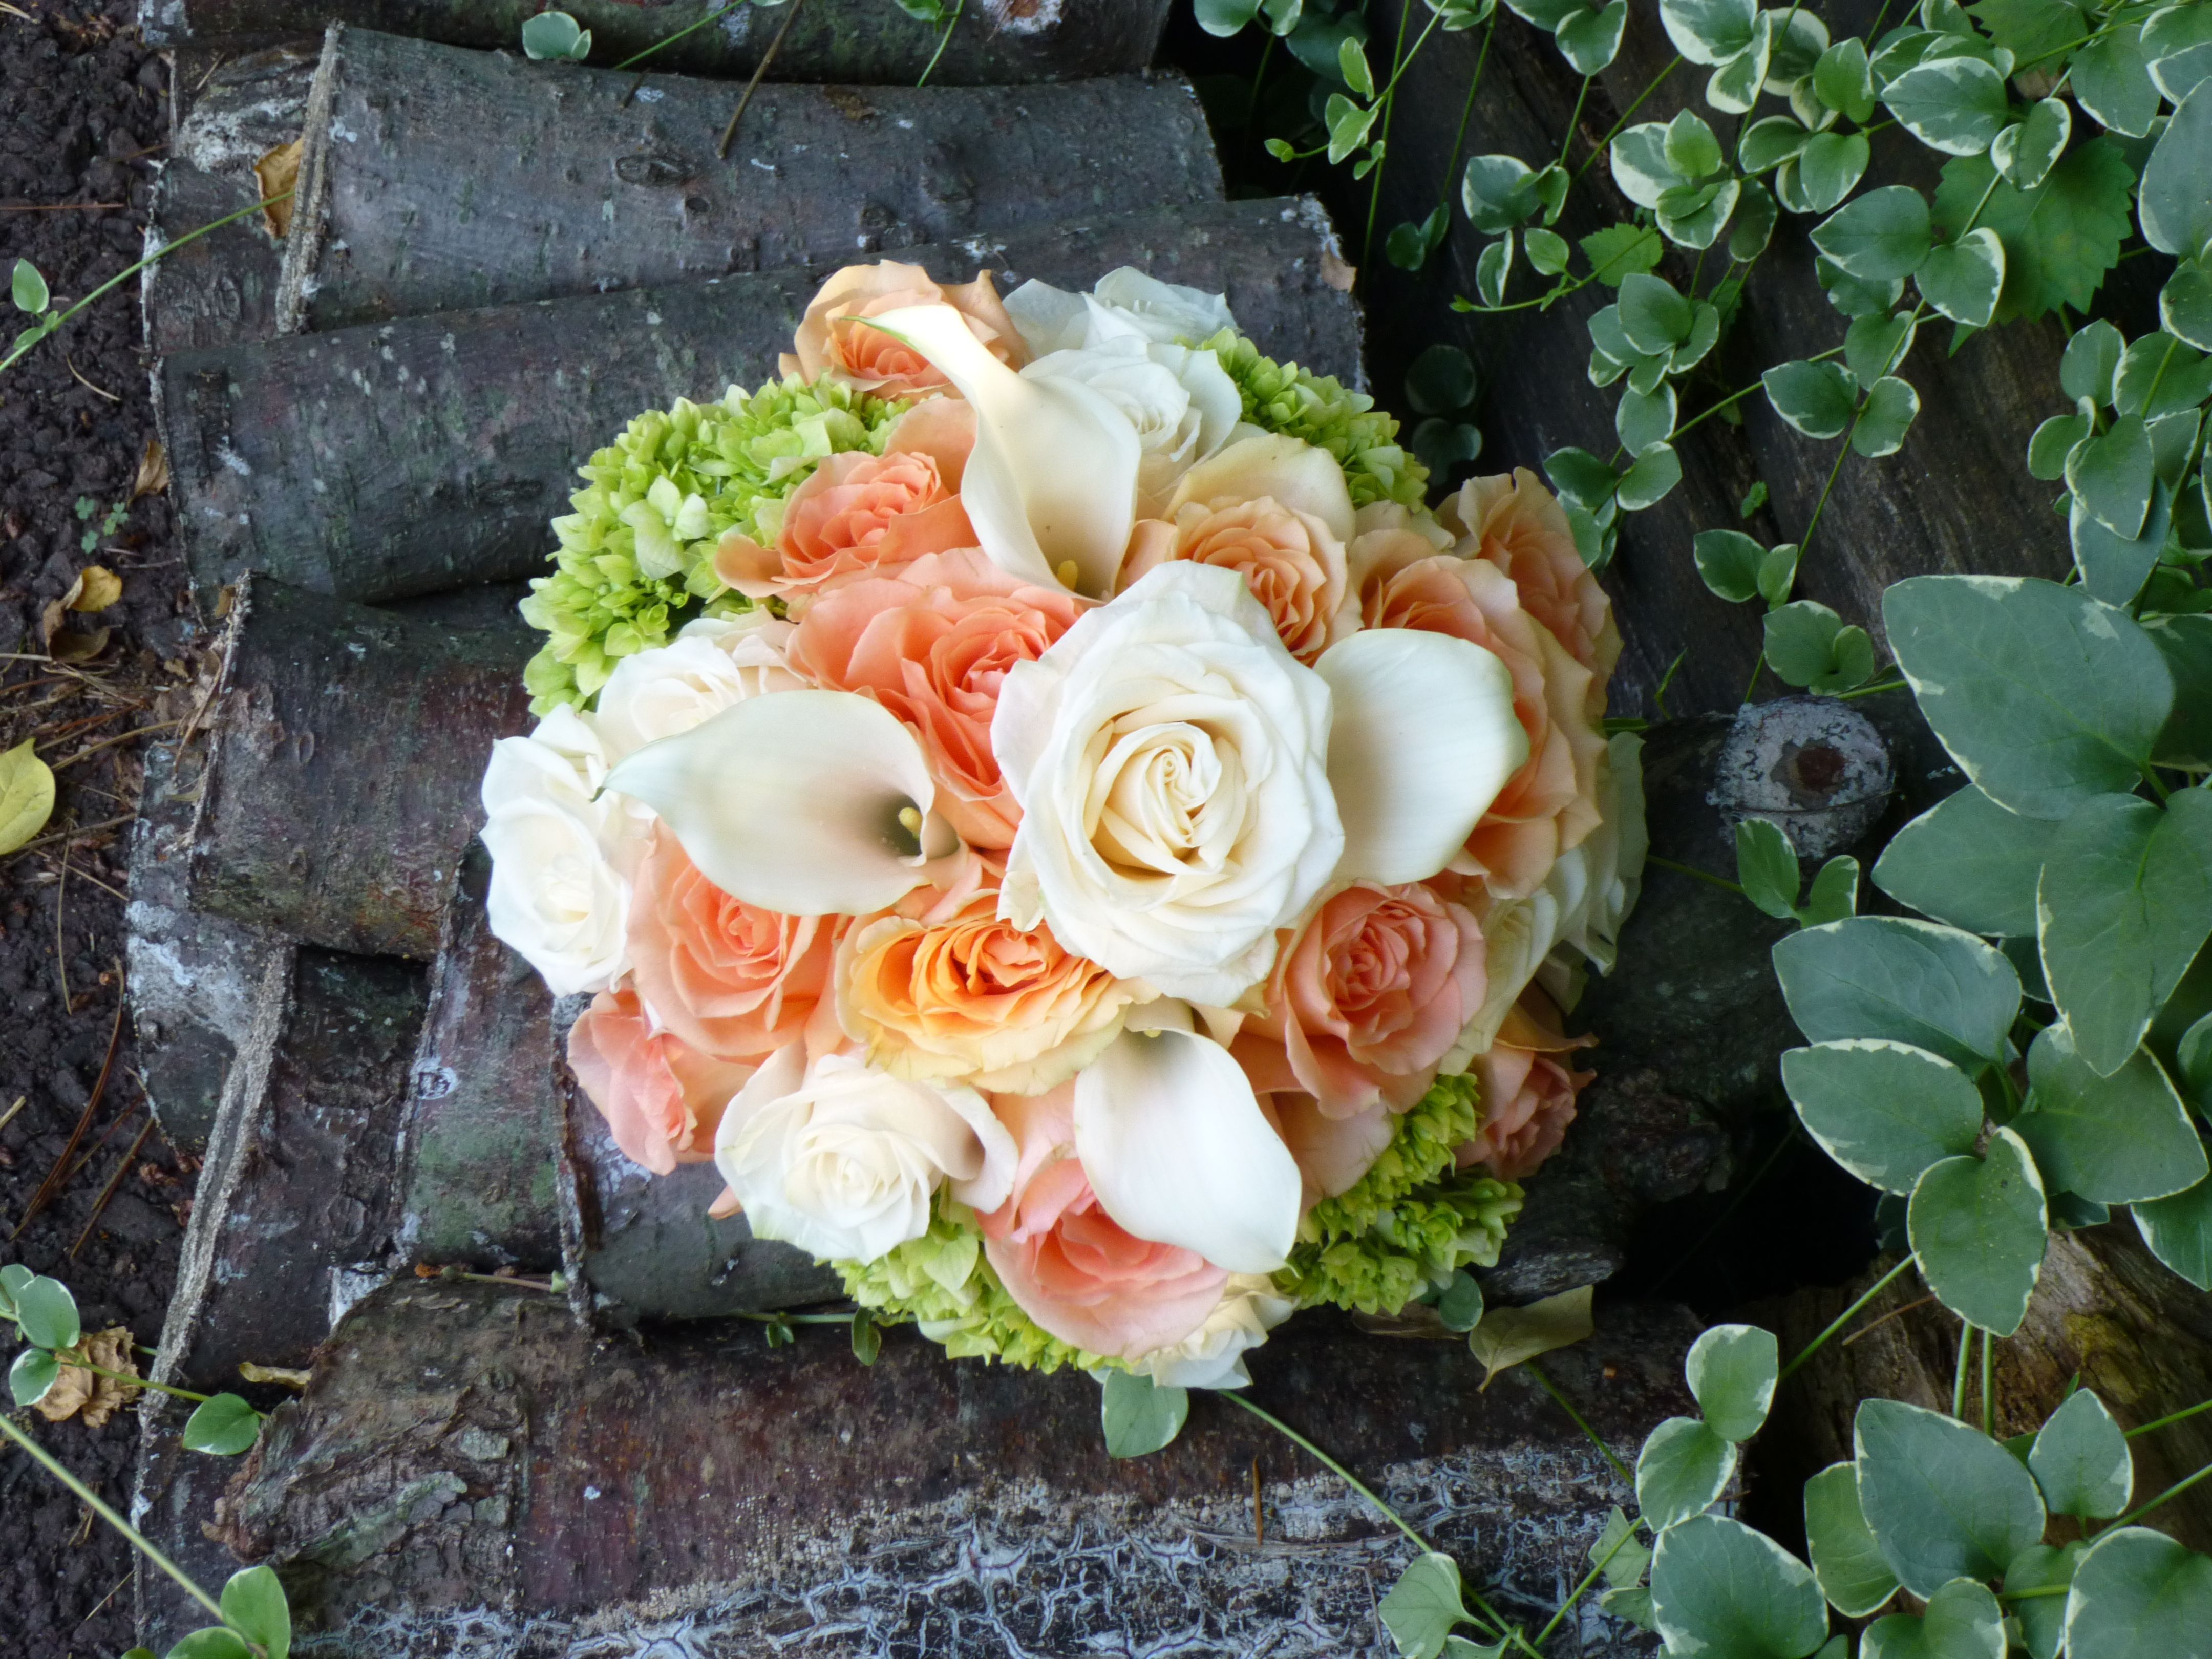 Peach Wedding:  Bouquet of peach roses, ivory roses, mini-calla lilies, and hydrangea.  Designed by Whimsical Welcomes Floral Design  Phila, PA